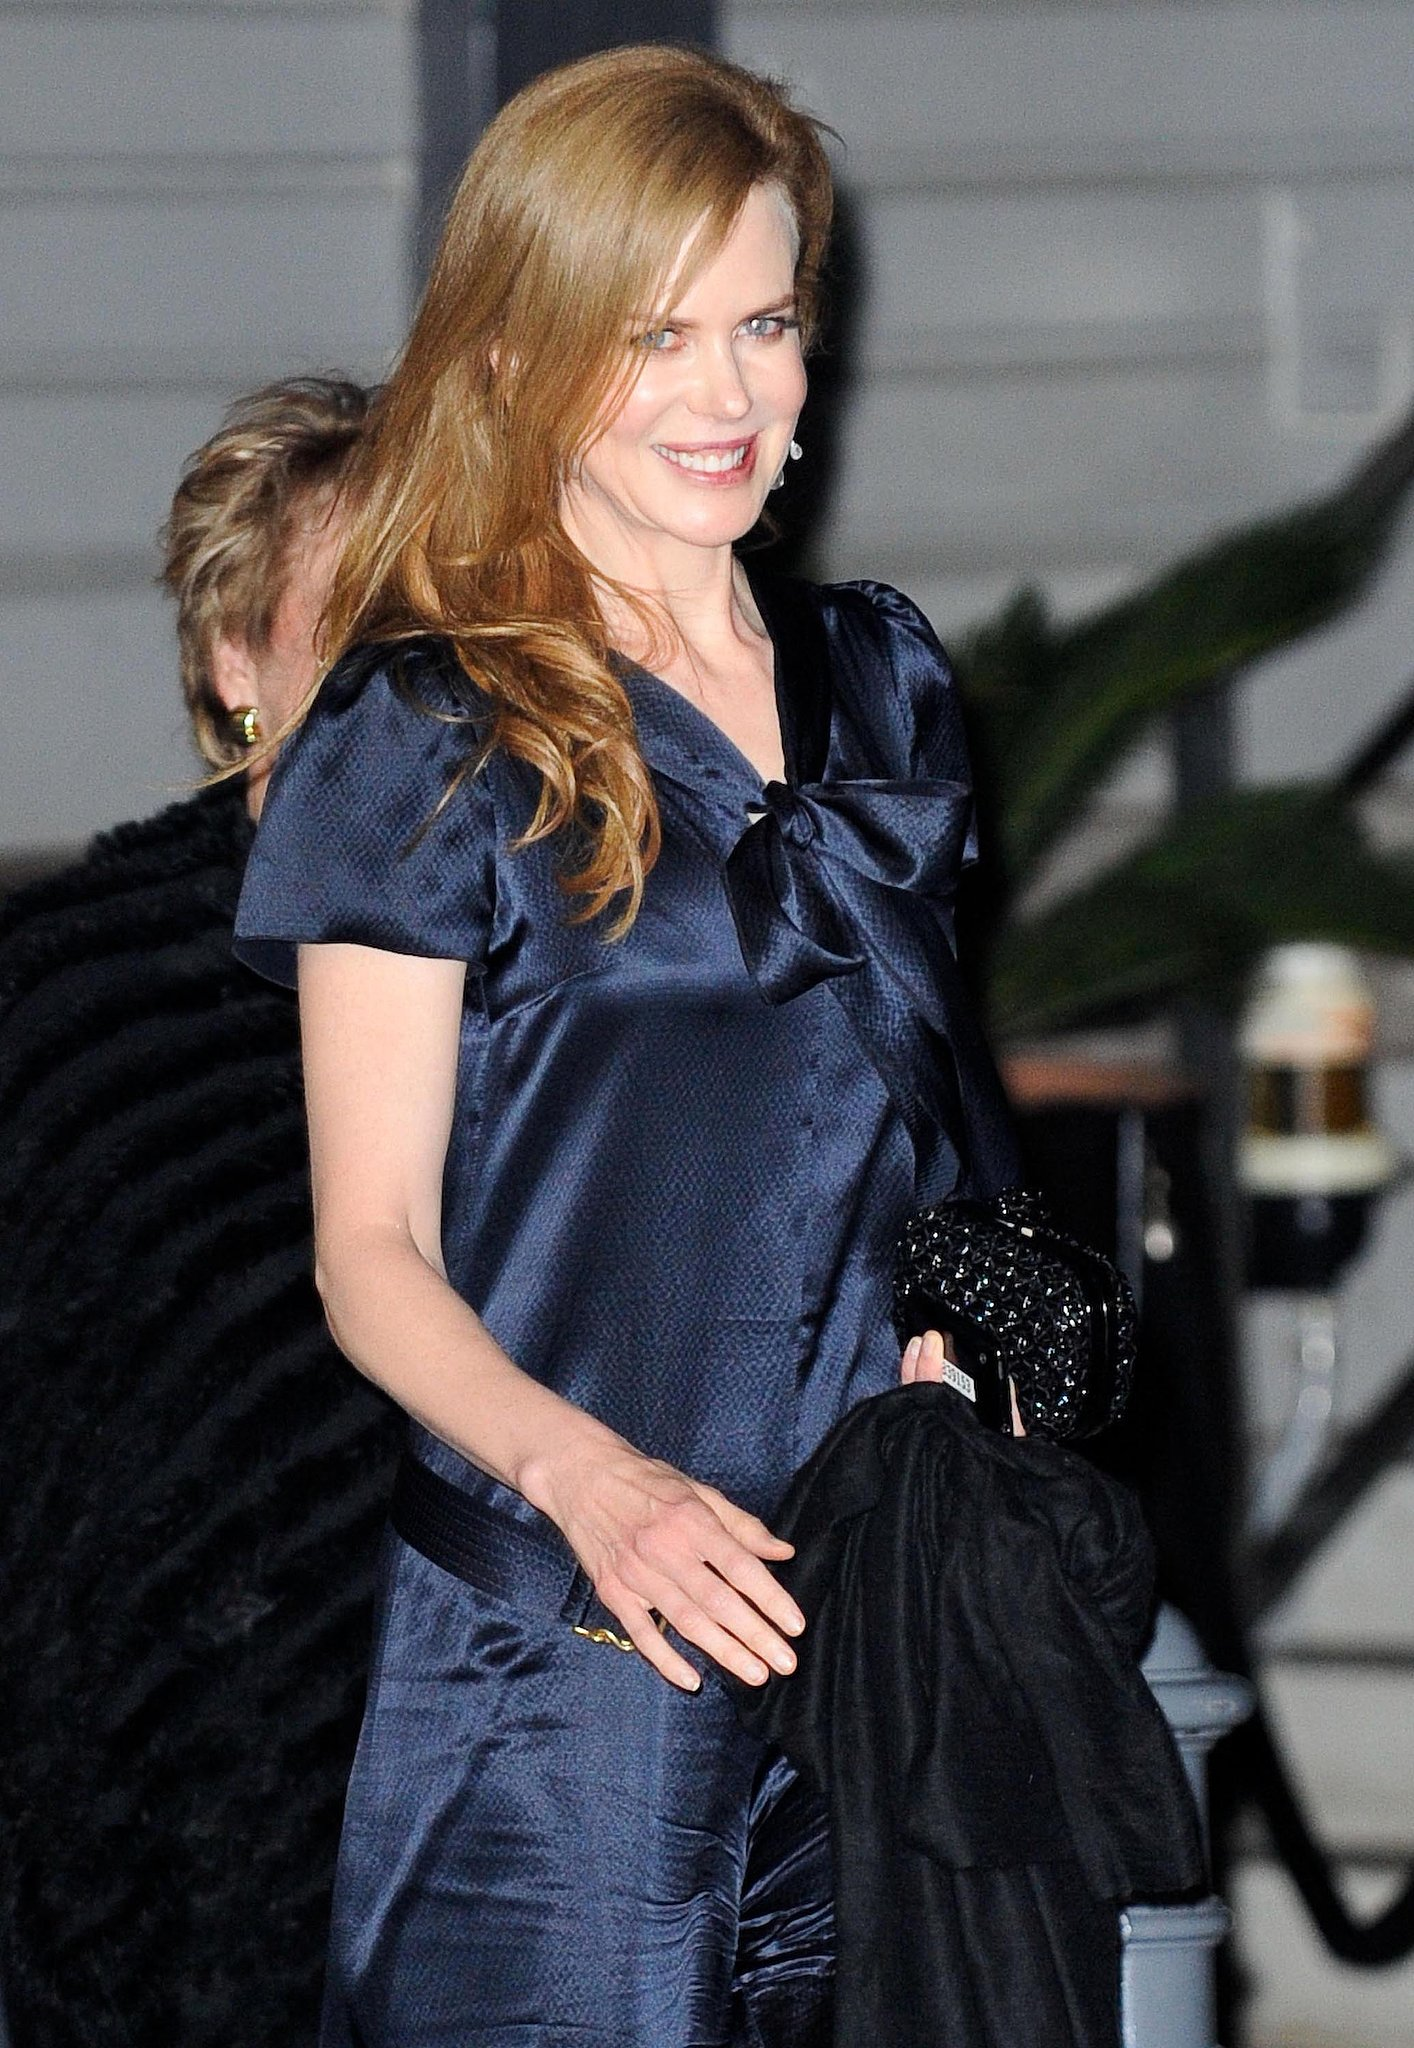 Nicole Kidman left her sister Antonia Kidman's wedding party in Sydney in June 2010.